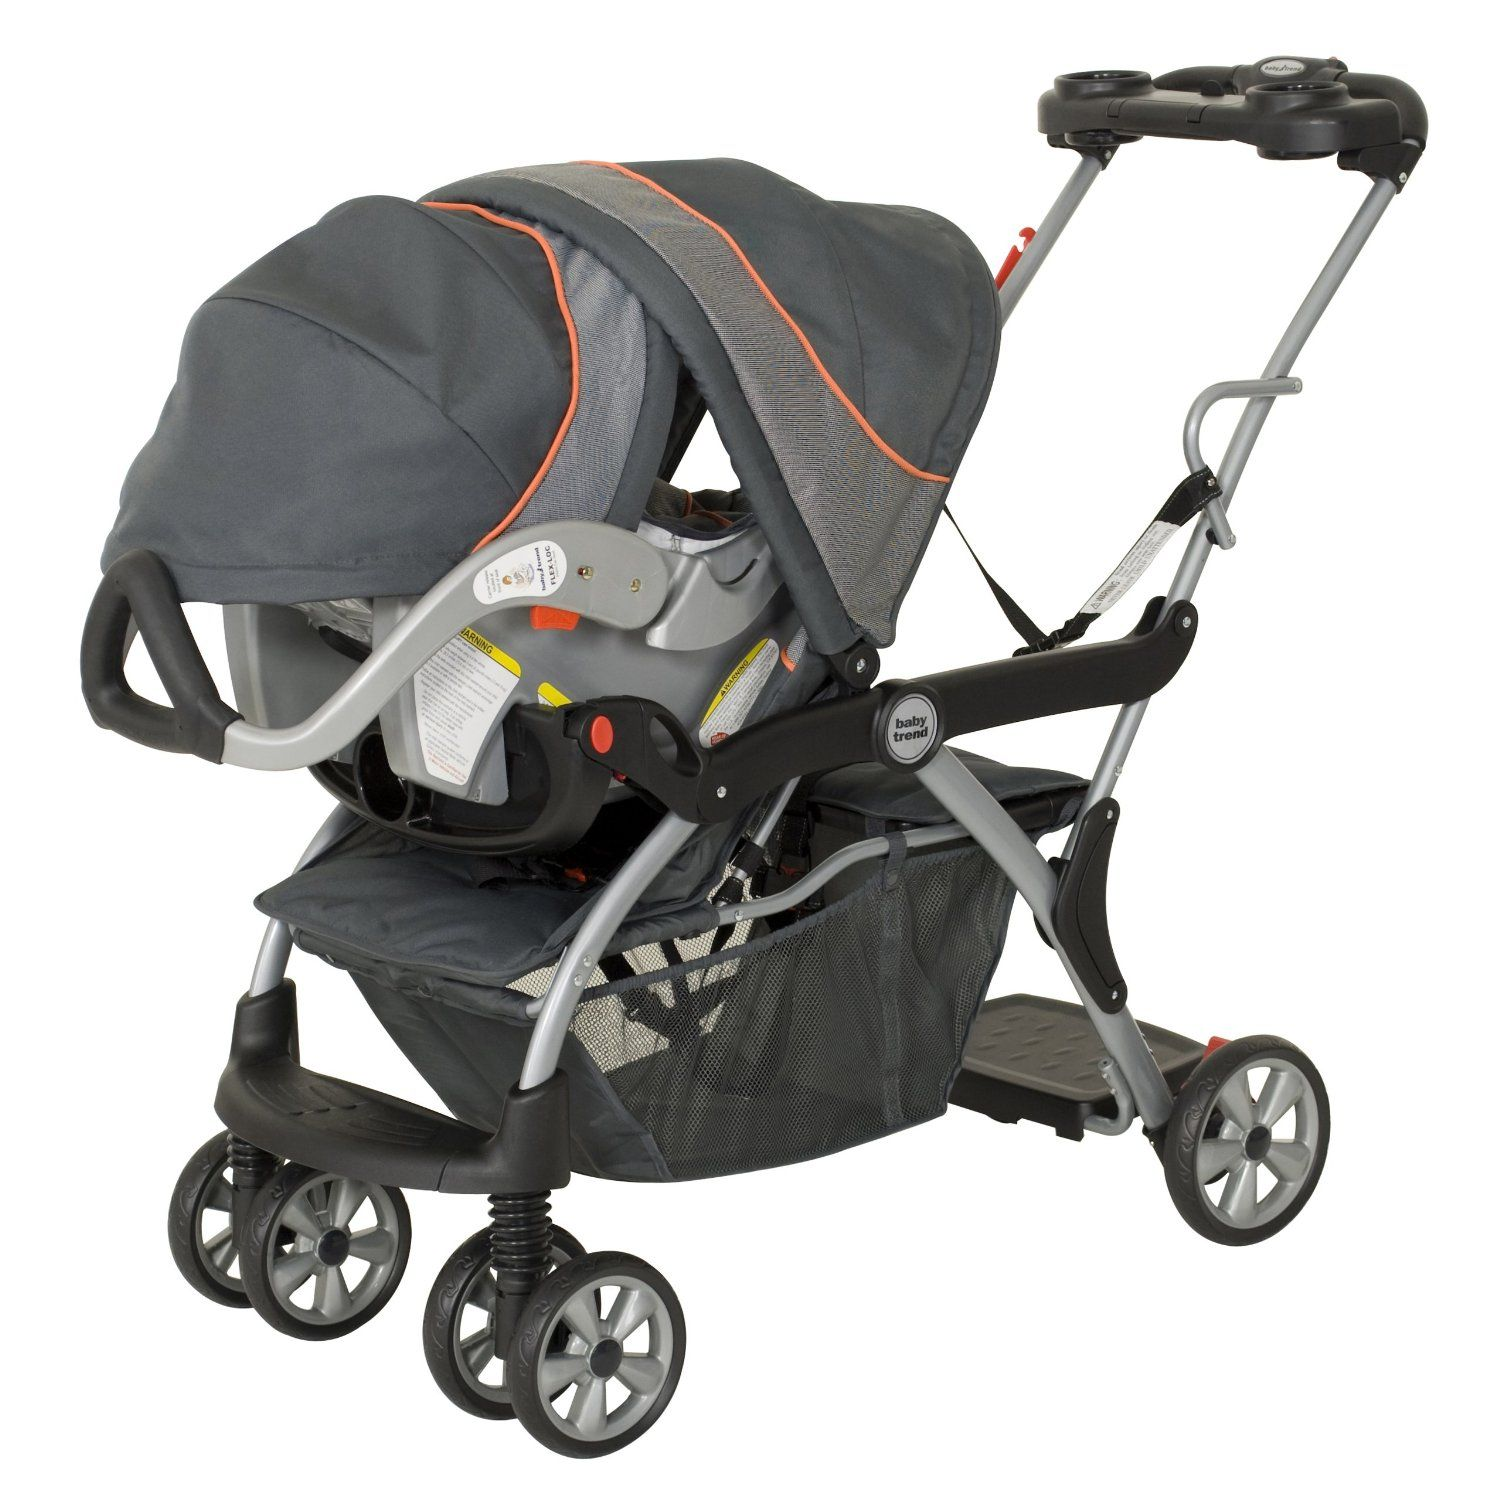 Baby Trend Flex Loc Car Seat Compatible Strollers Best Baby Strollers Baby Trend Double Stroller Baby Strollers